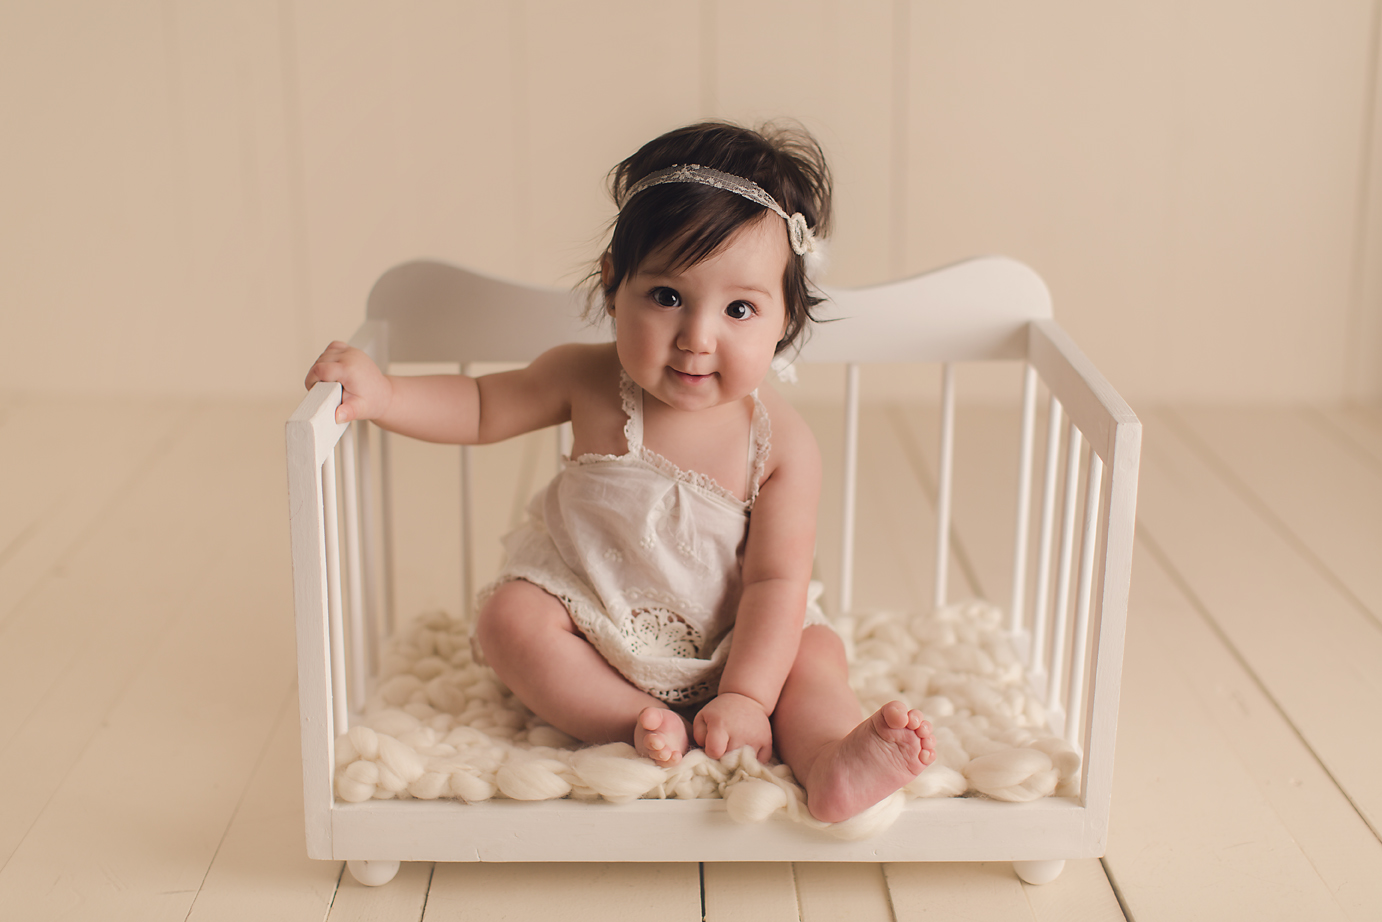 irvine-baby-mini-sessions-studio-orange-county